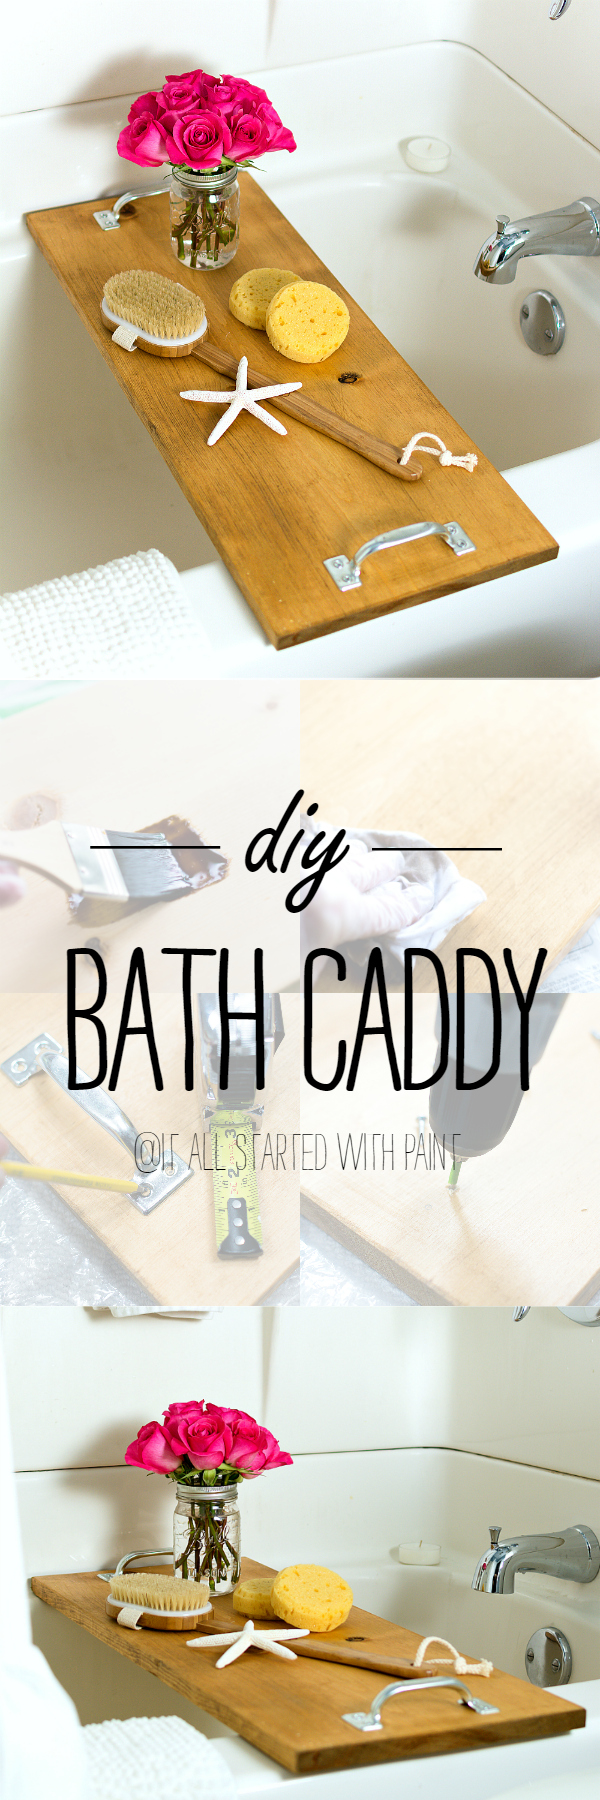 diy-bath-caddy-wood